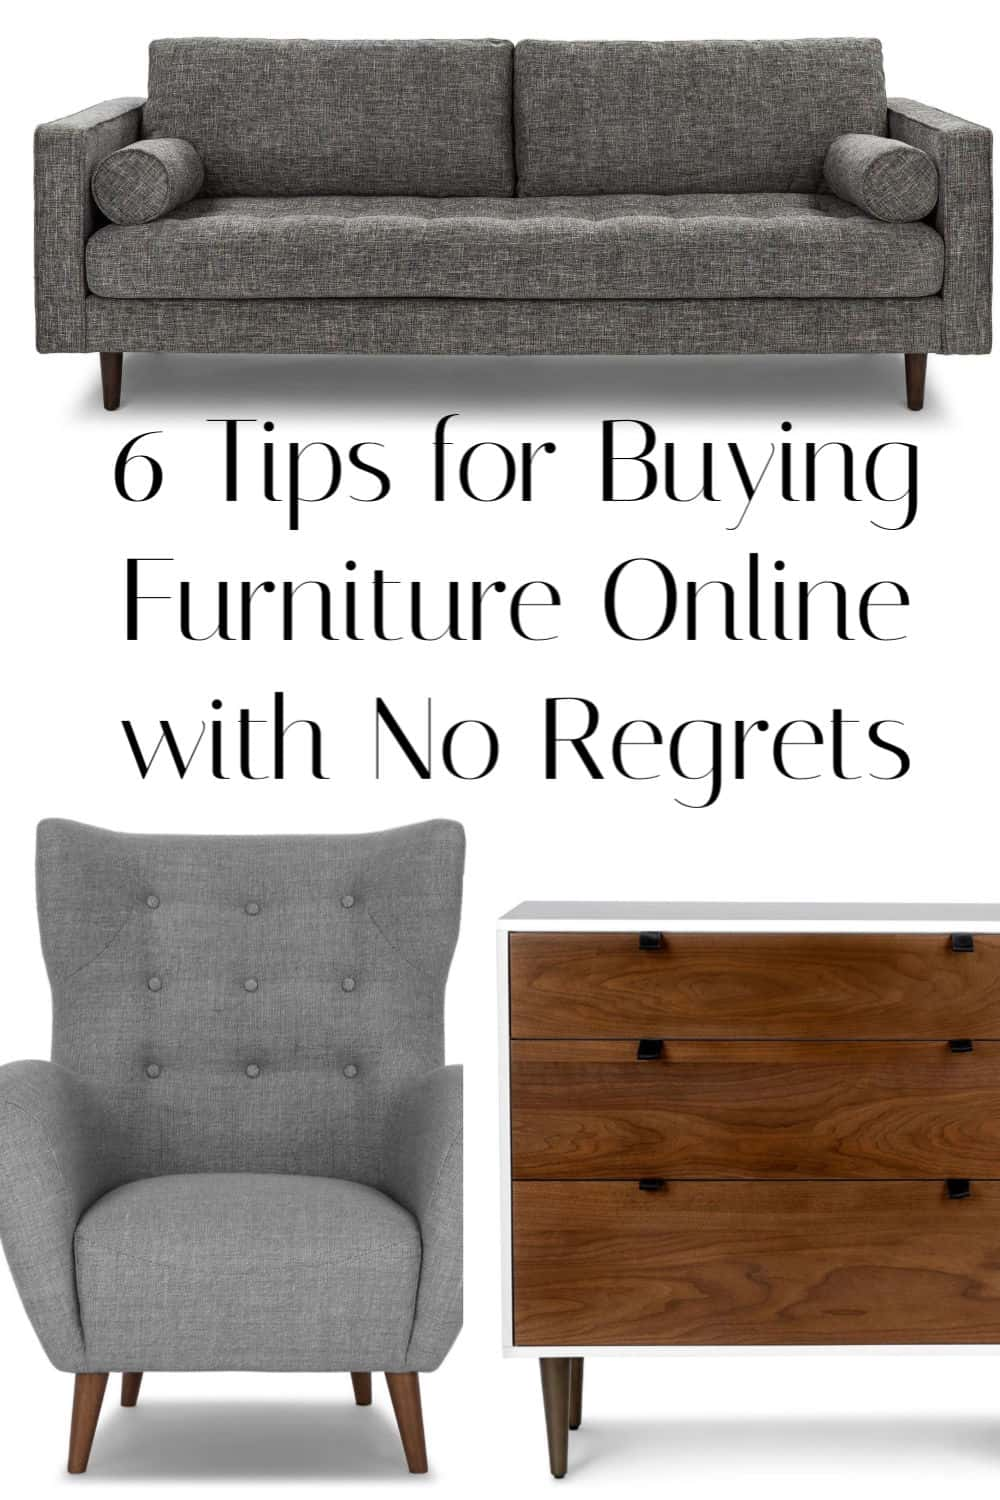 tips for buying furniture online with no regrets